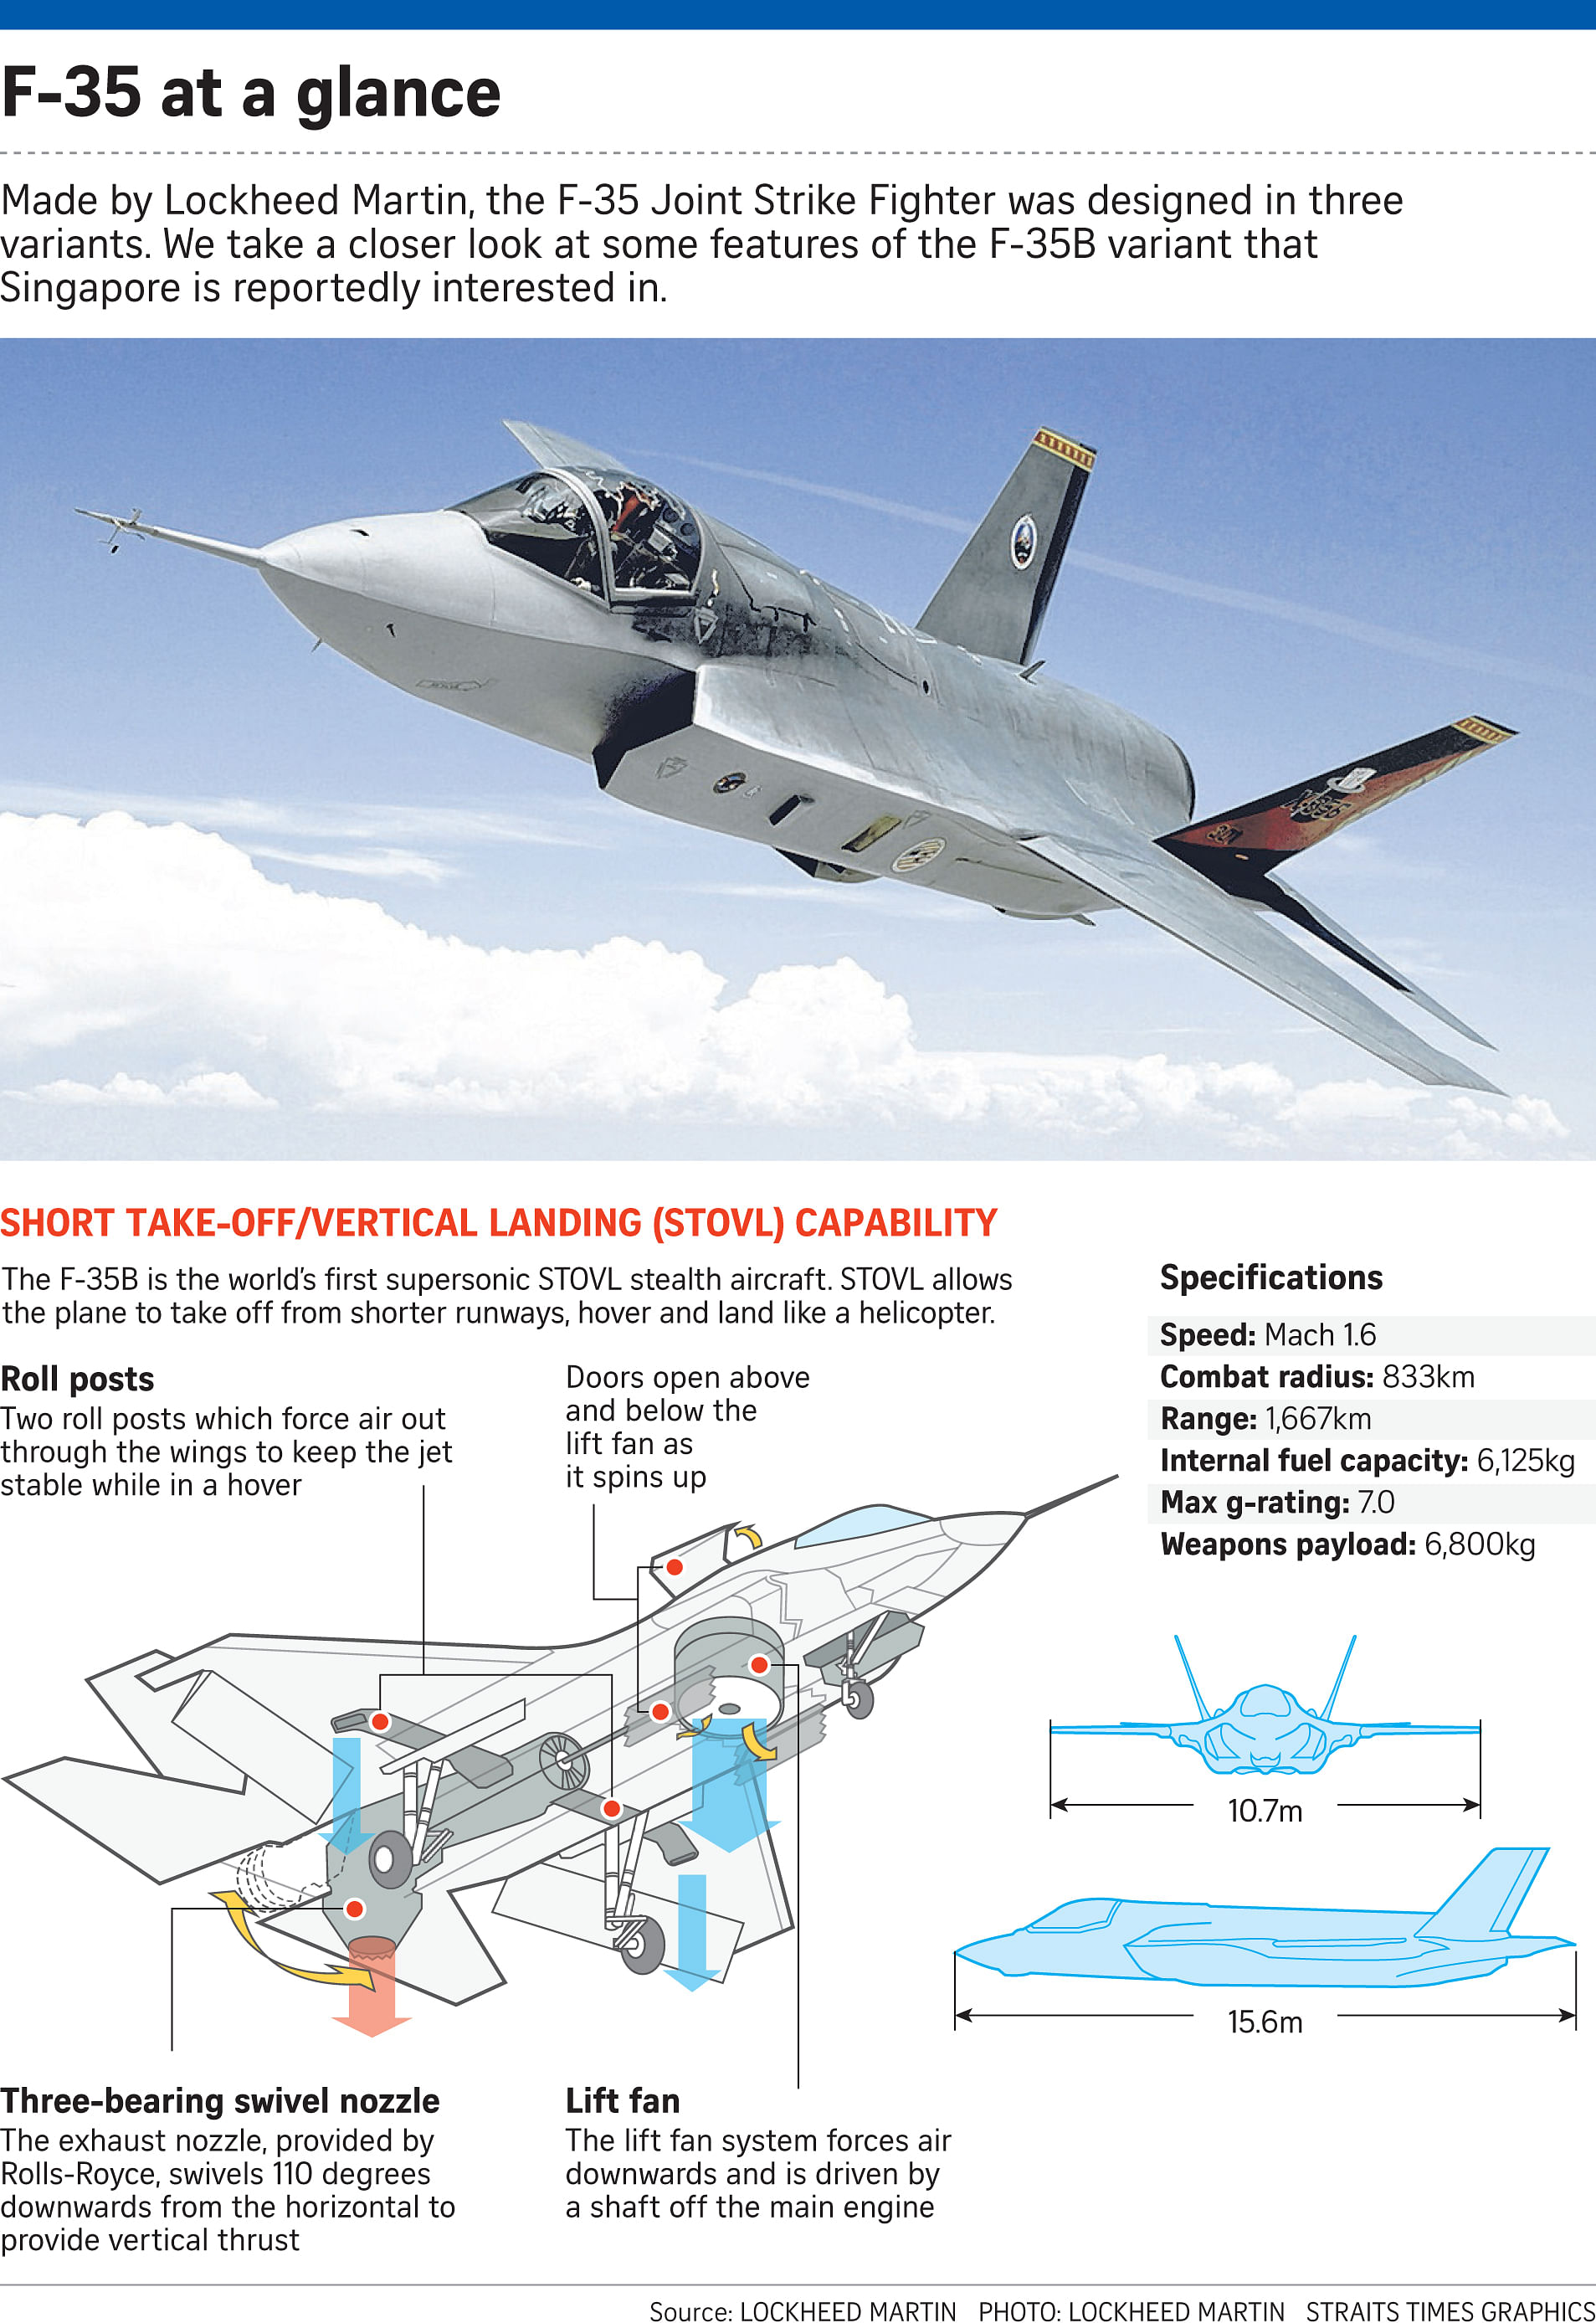 Mindef Replacing F 16 Jets Starting With A Few F 35s A Prudent Move Say Analysts Singapore News Top Stories The Straits Times